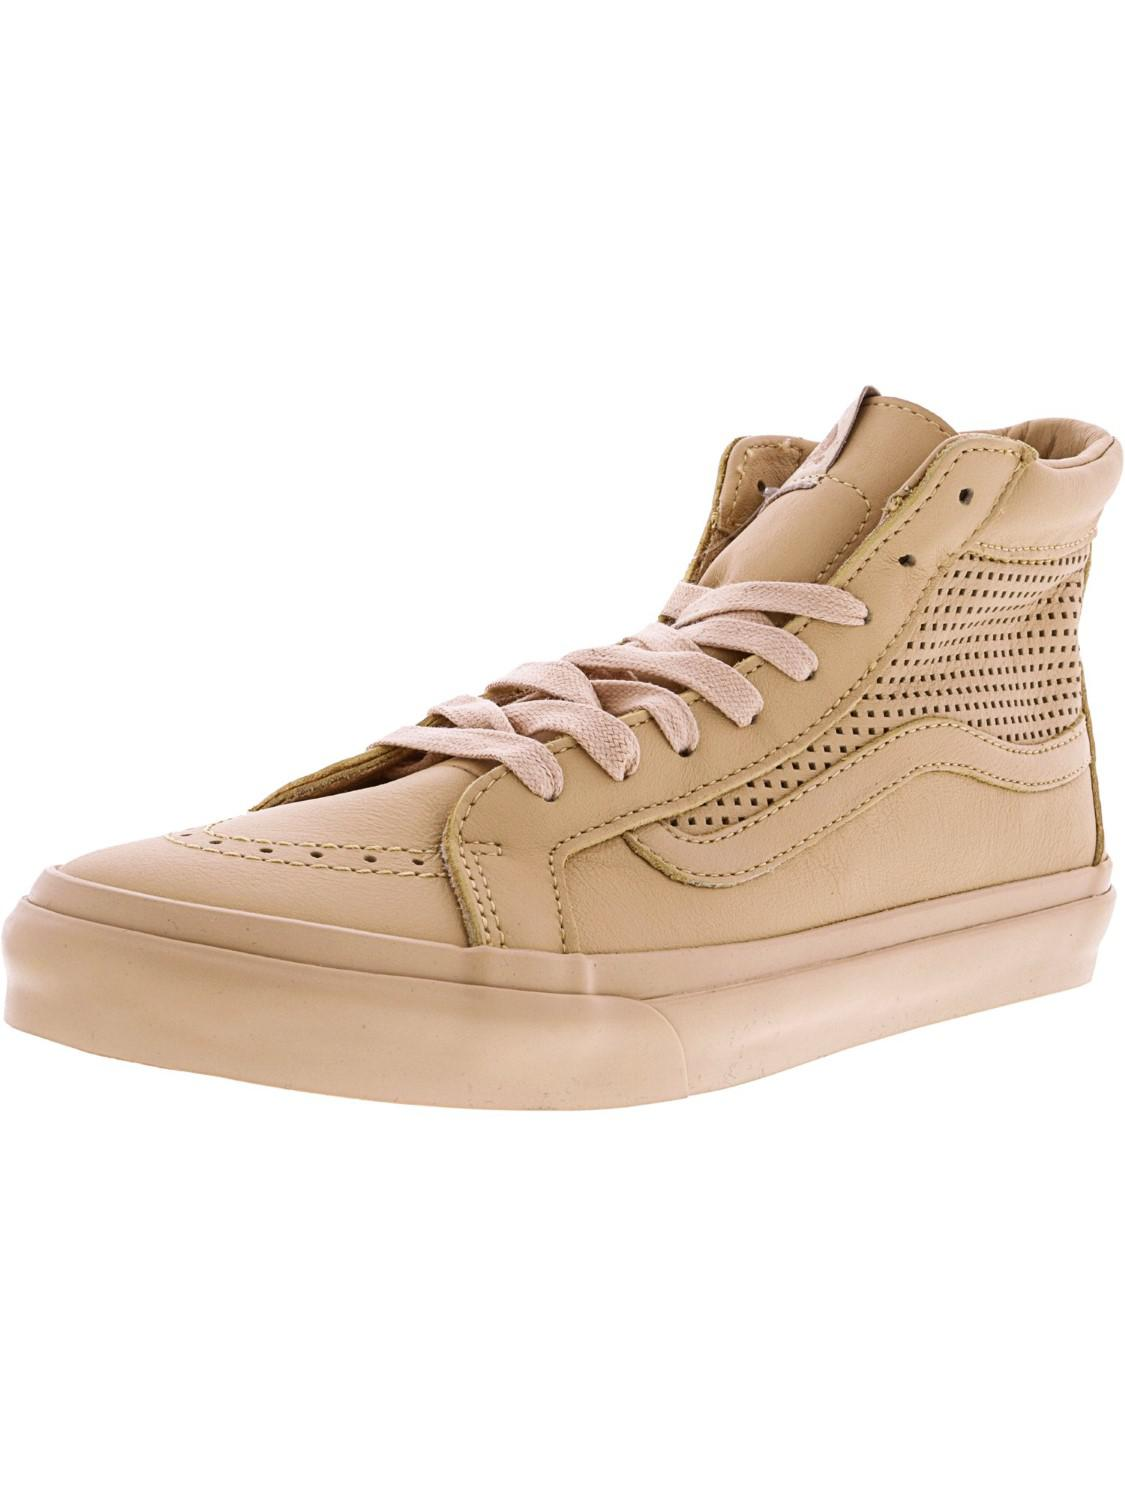 ce4f8277bd Lyst - Vans Sk8-hi Slim Cutout Square Perf High-top Leather ...